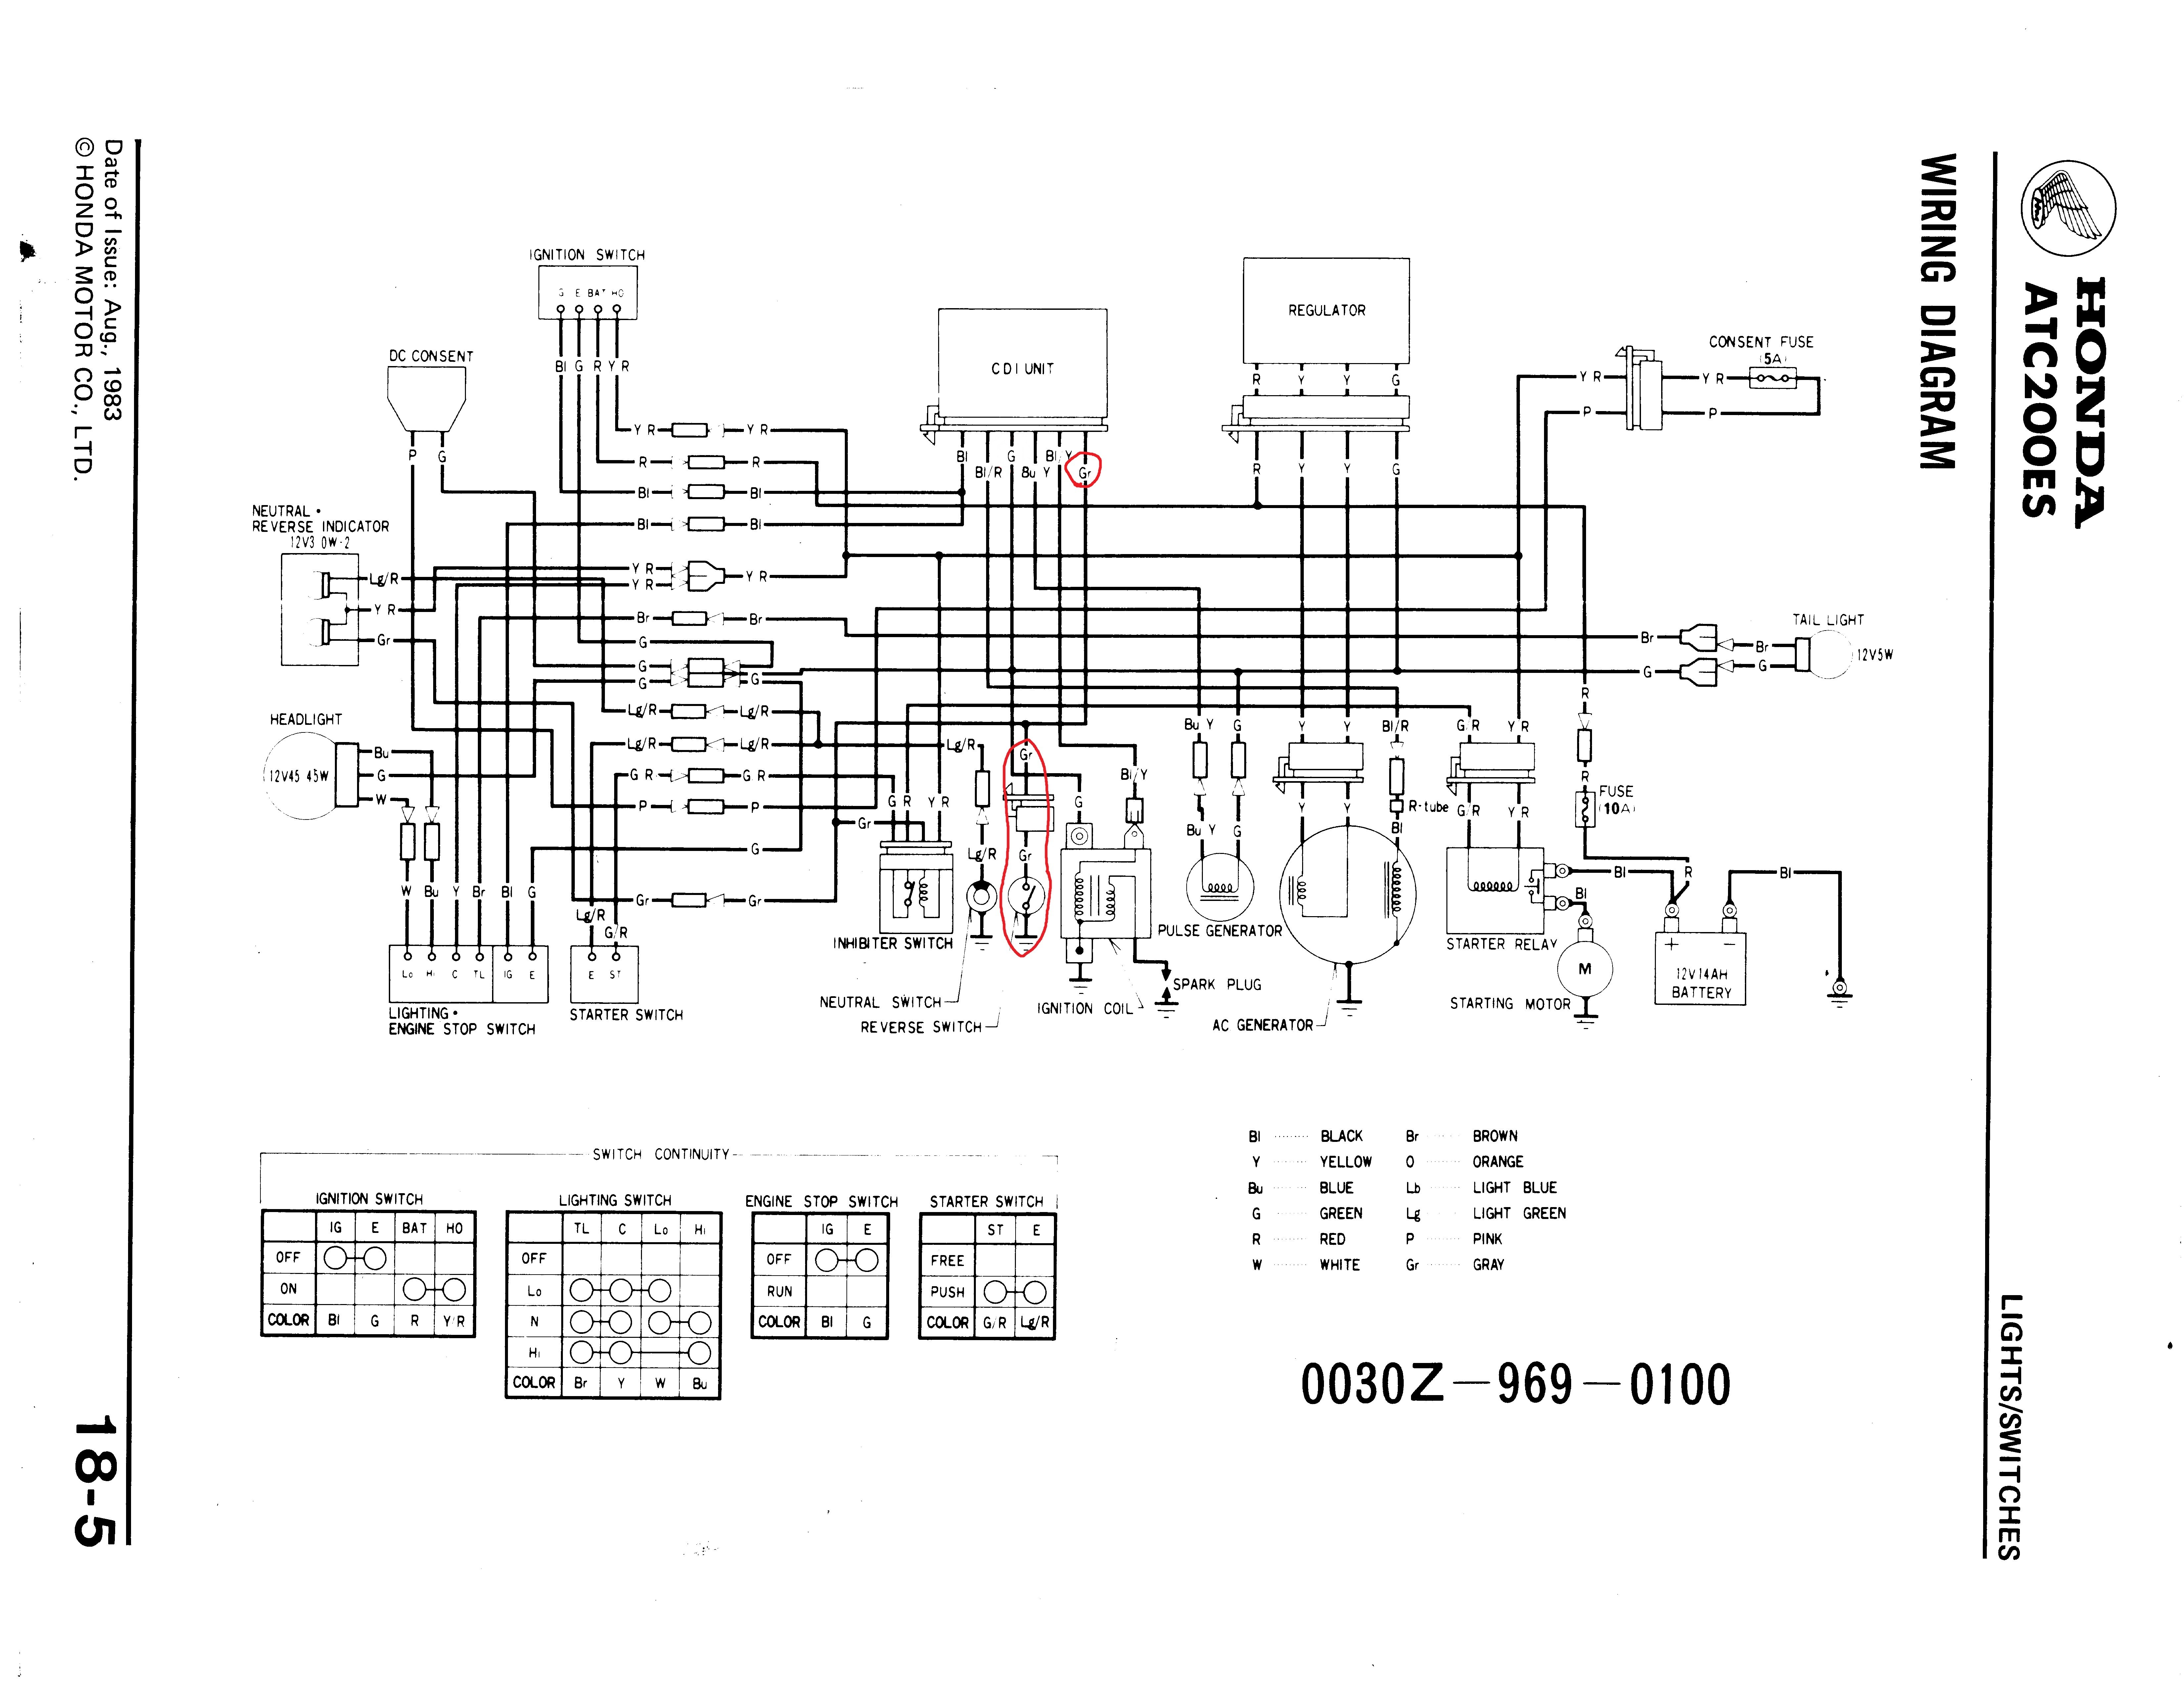 Honda atv Wiring Diagram Honda 300 Fourtrax Wiring Diagram – Bigapp Of Honda atv Wiring Diagram